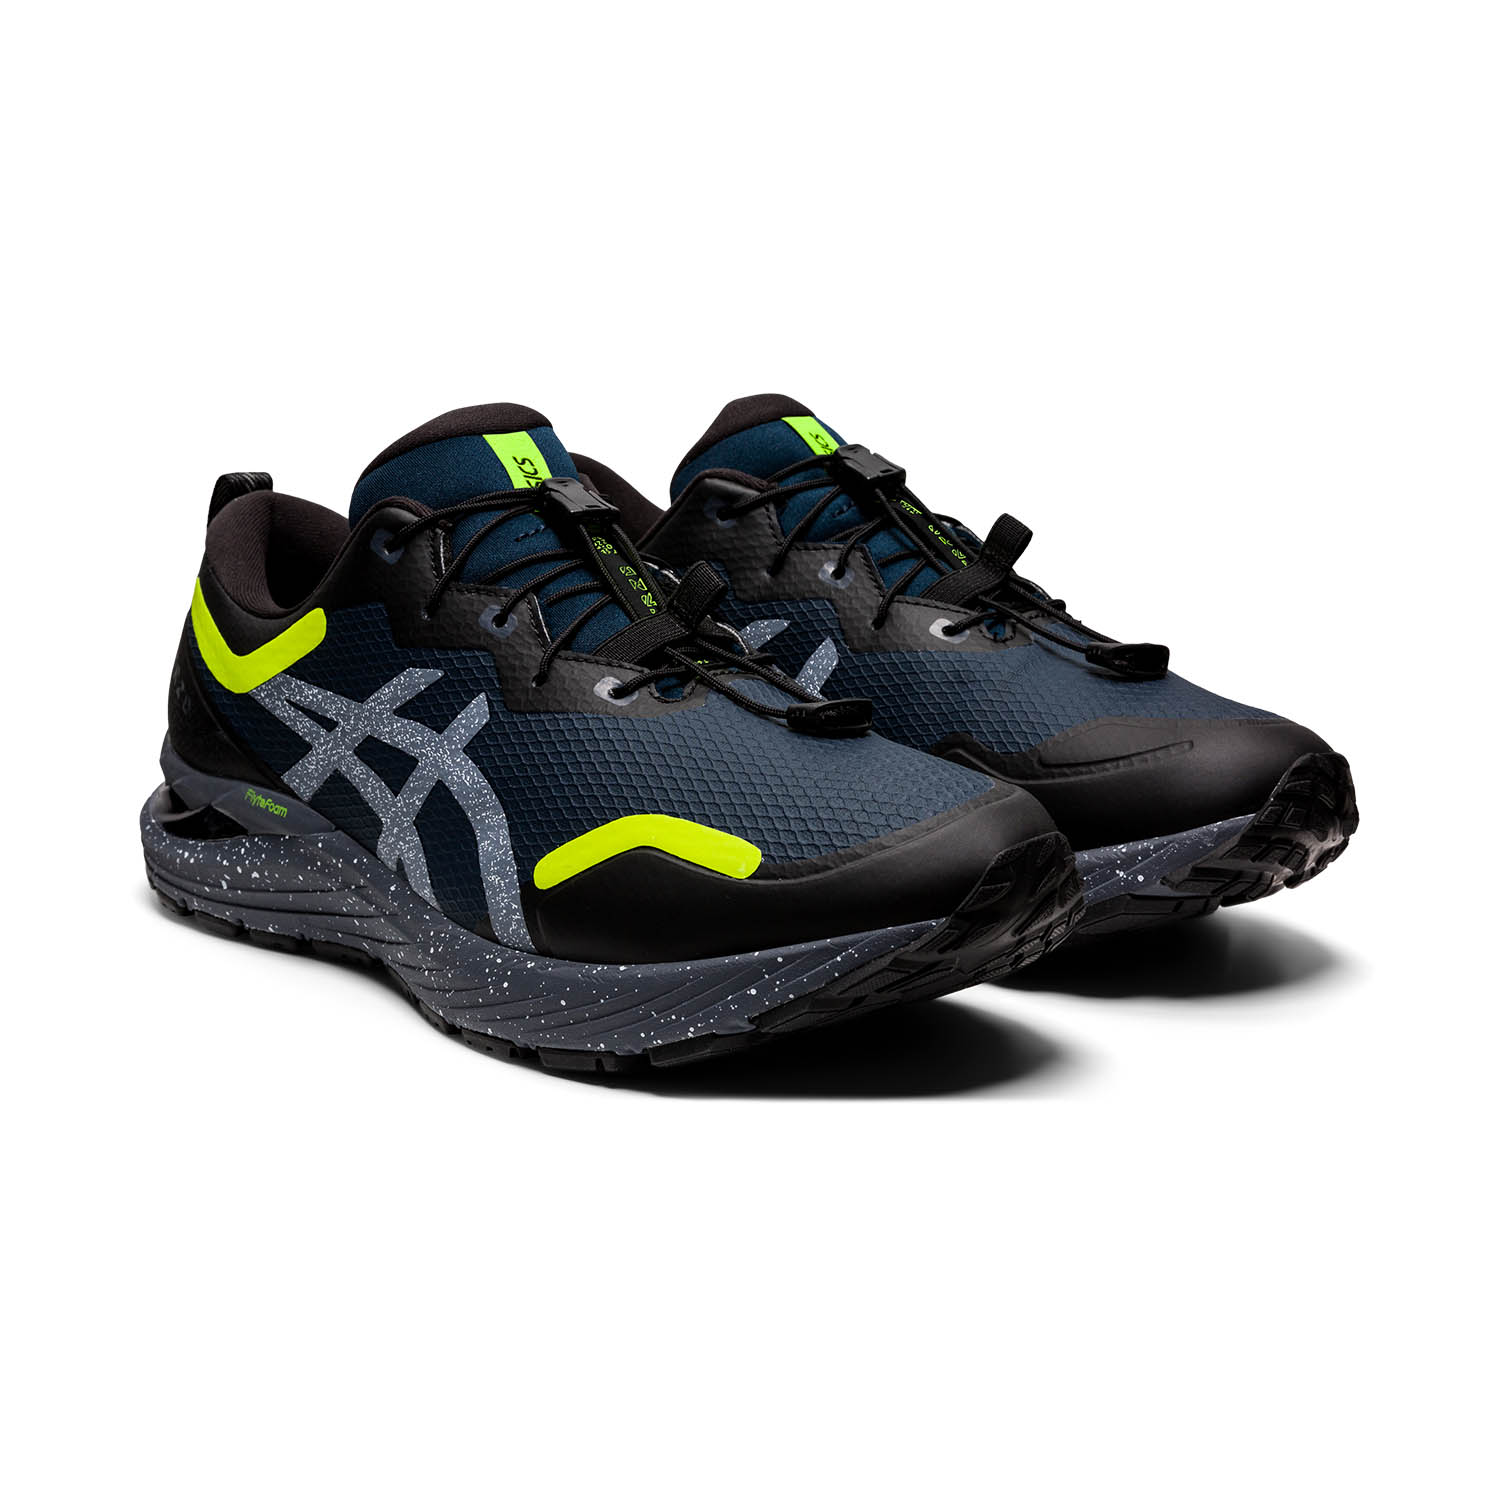 Asics Gel Cumulus 23 AWL - French Blue/Safety Yellow